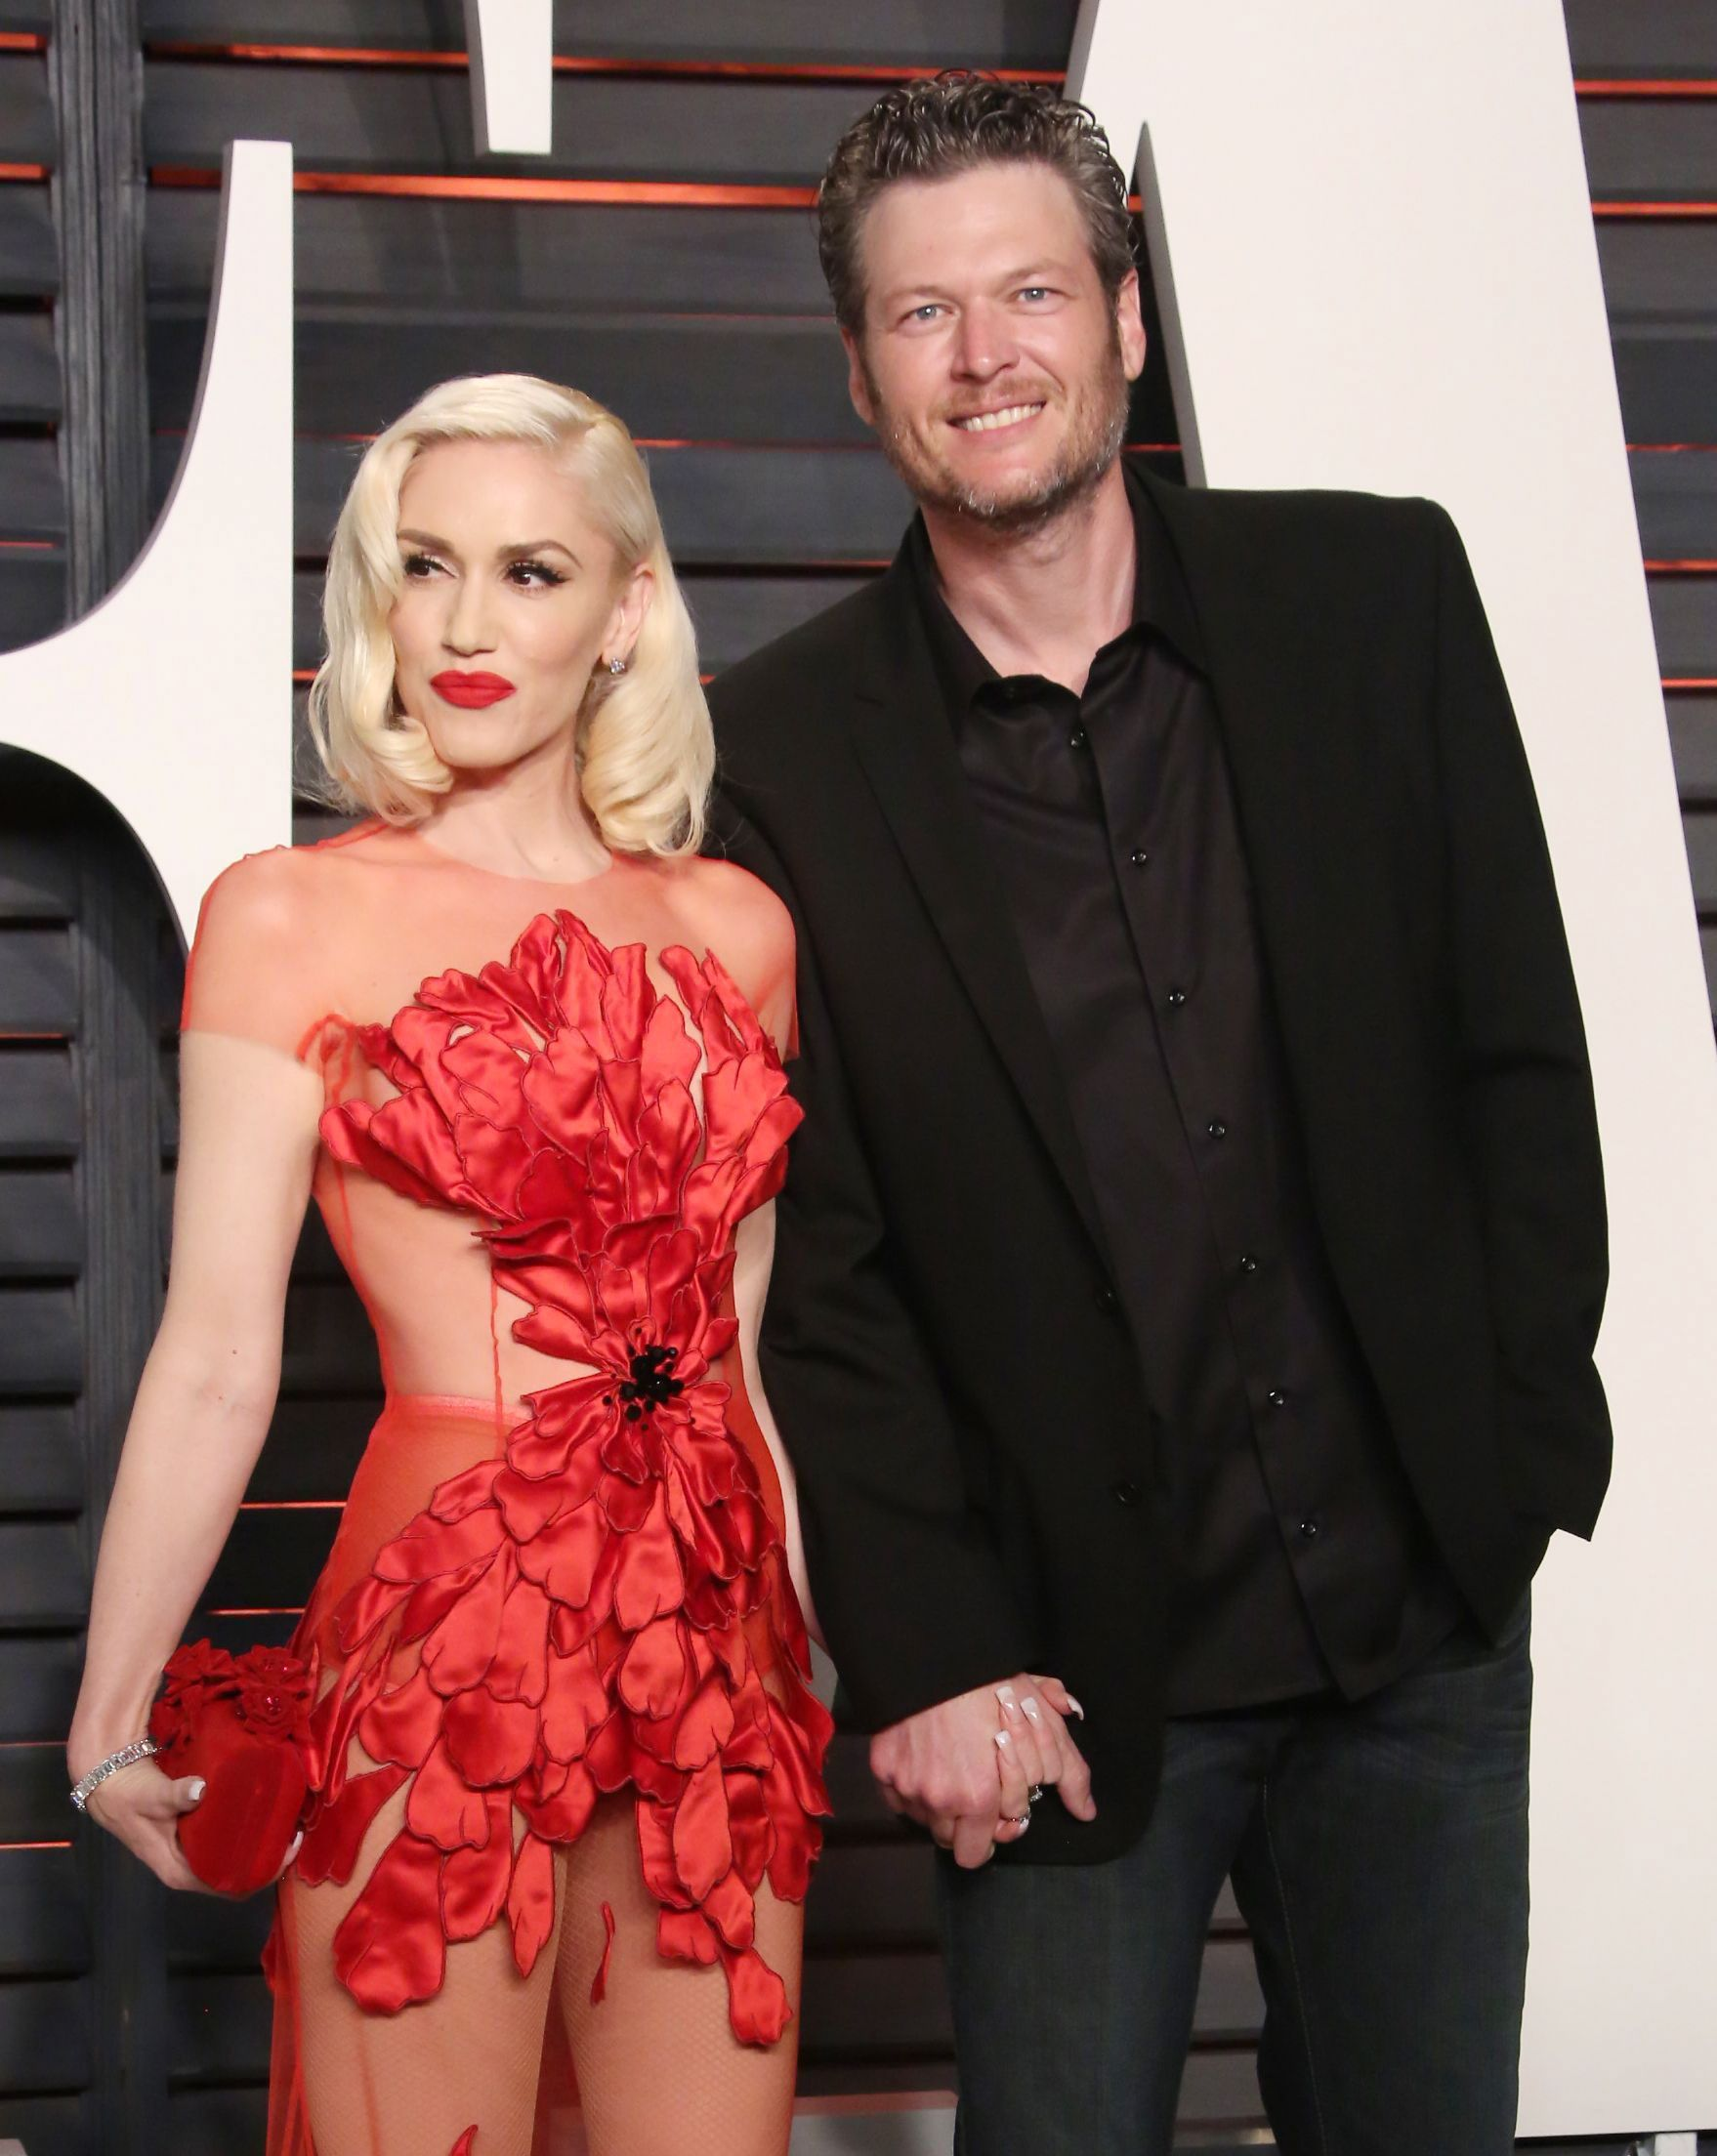 Things You Probably Didn't Know About Blake Shelton And Gwen Stefani's Relationship - Fame10